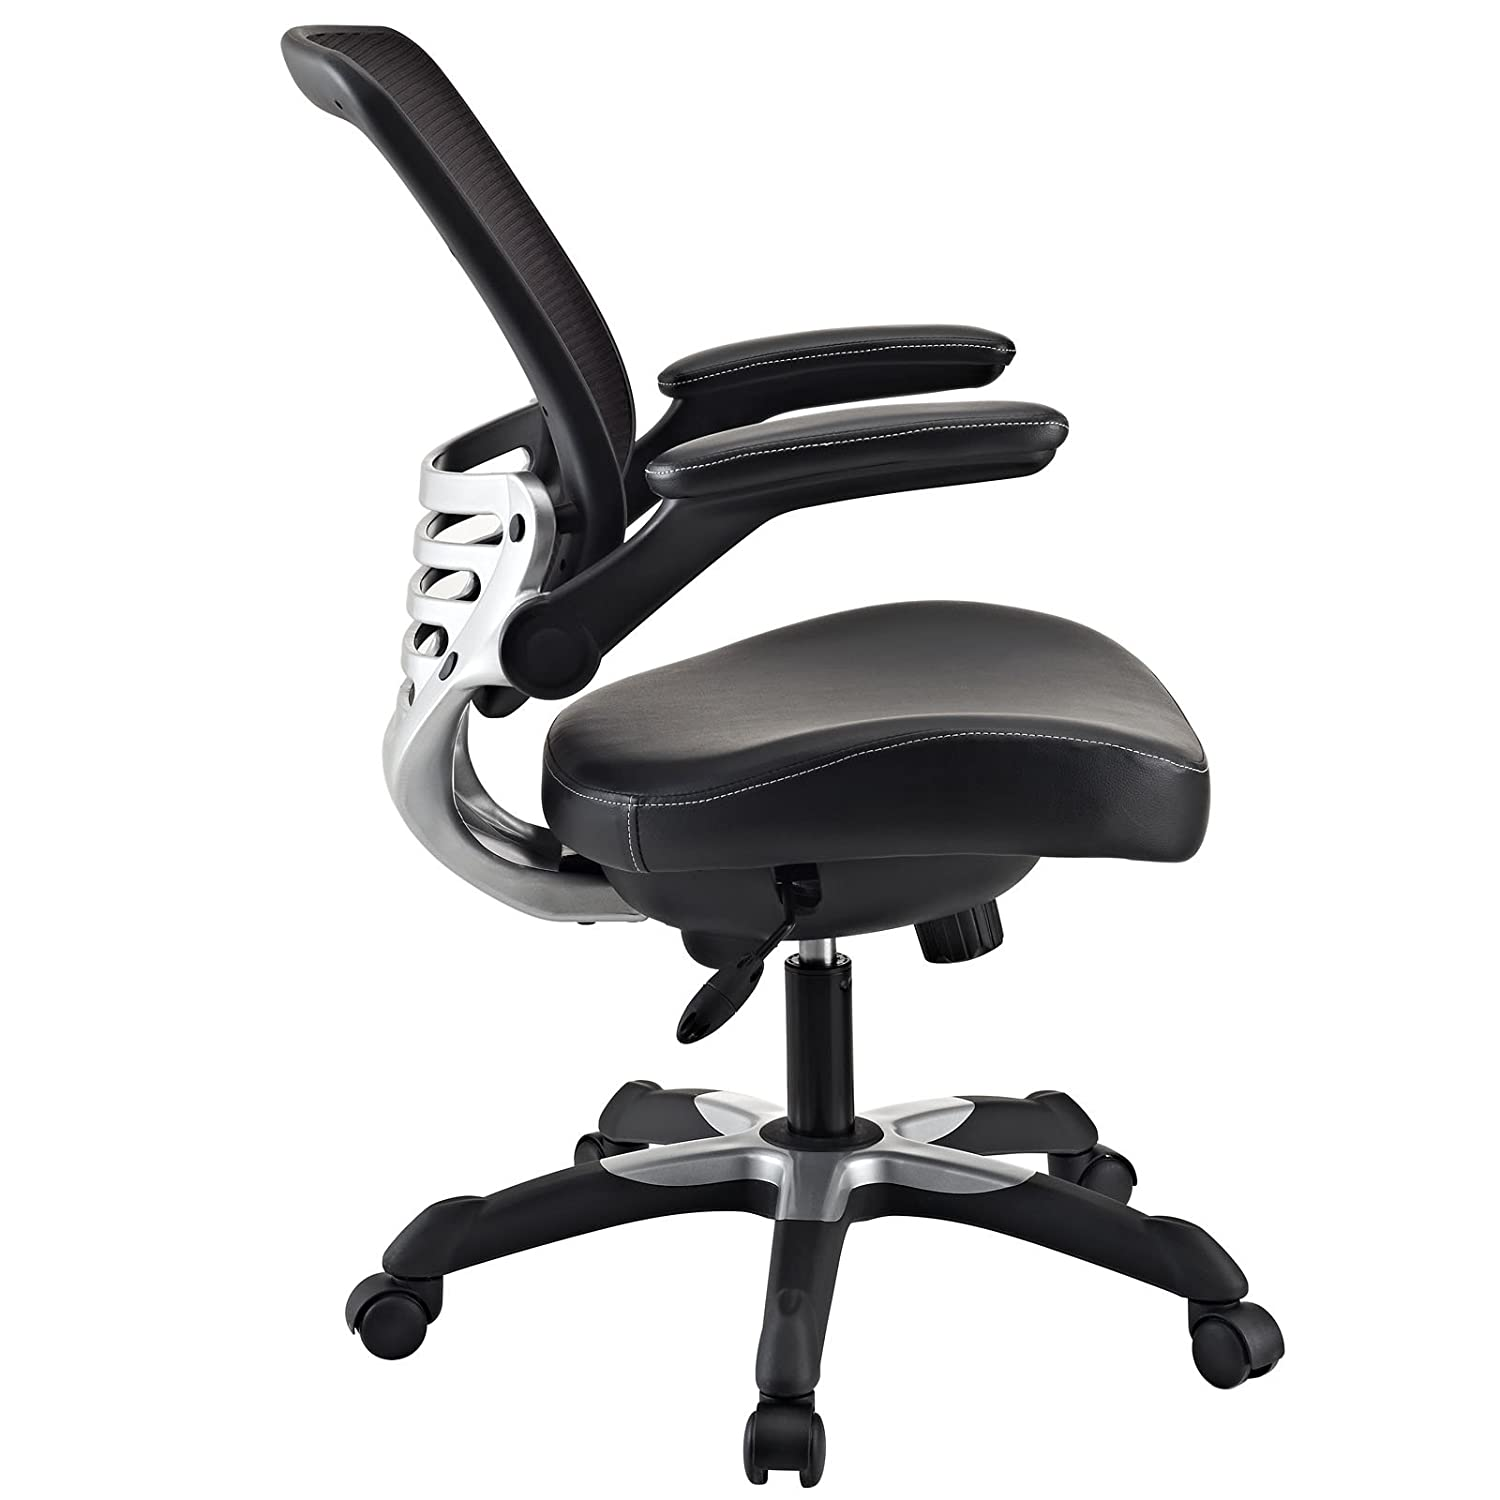 amazoncom lexmod edge office chair with mesh back and black leatherette seat kitchen dining amazon chairs office